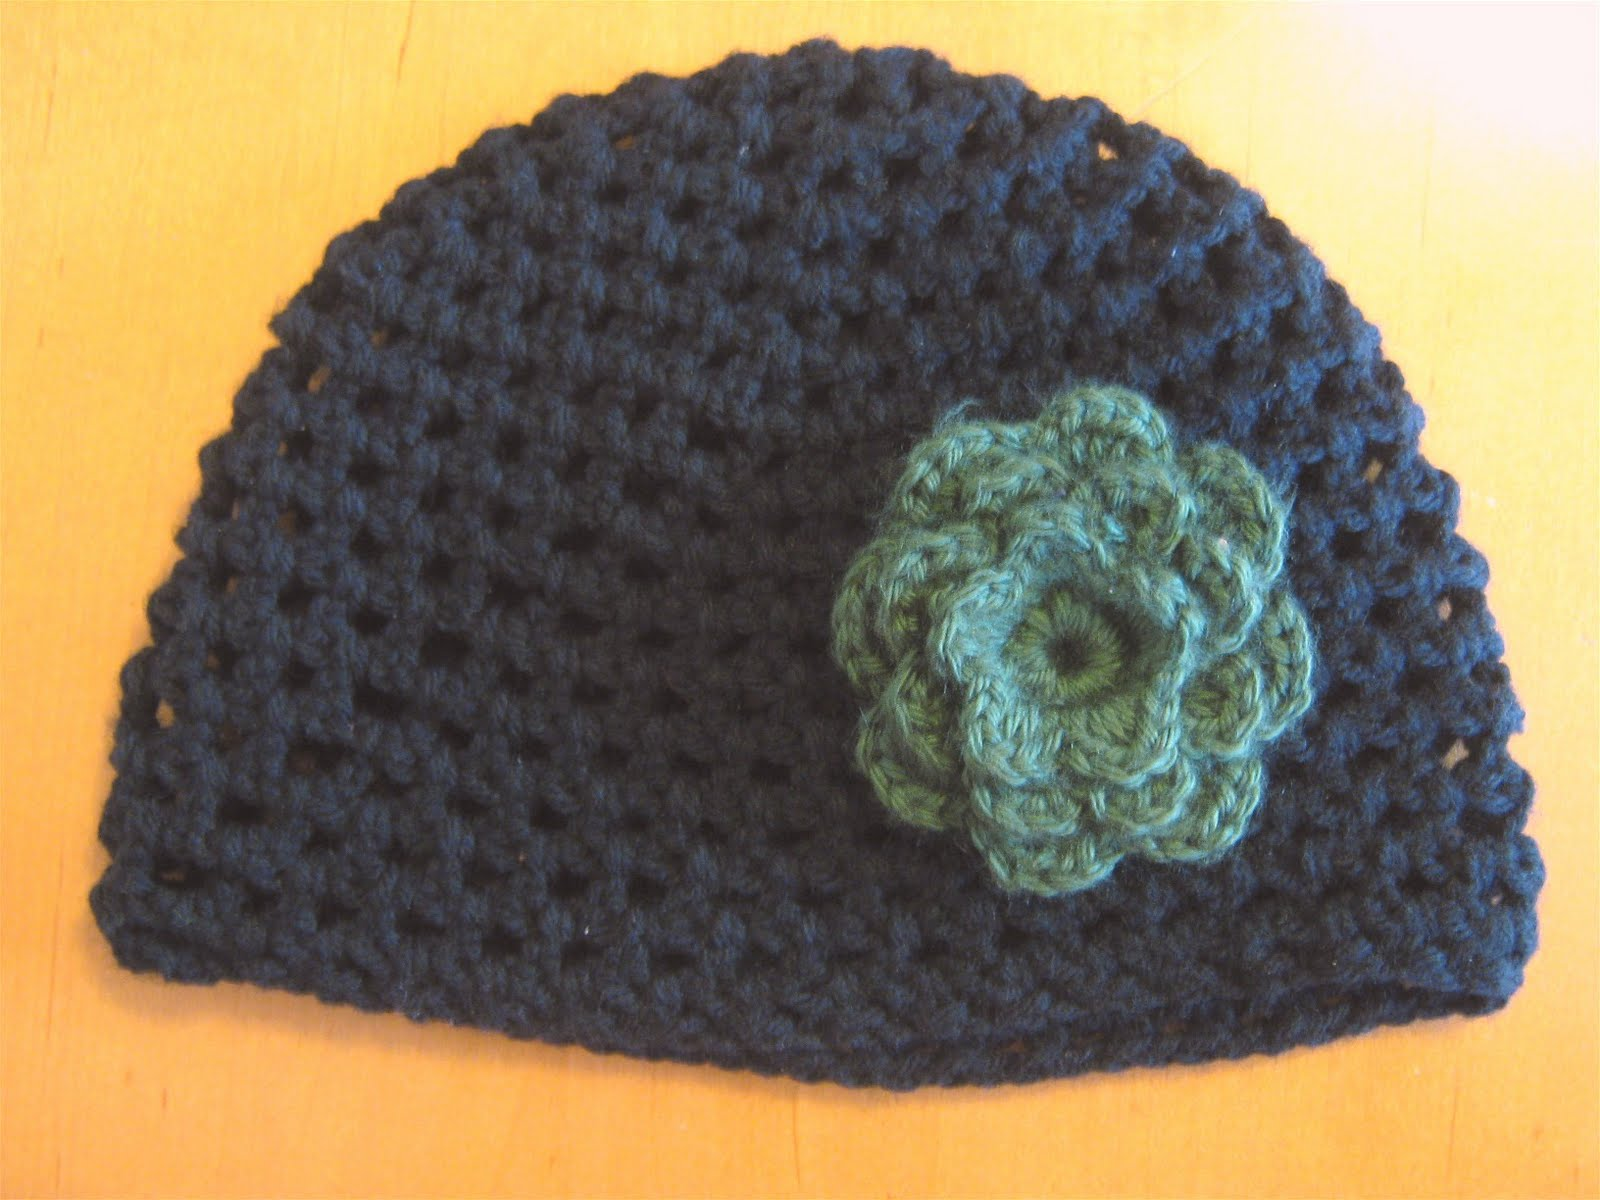 Crochet Flower For Hat : ... black crocheted hat with a green crocheted flower on it it was a gift